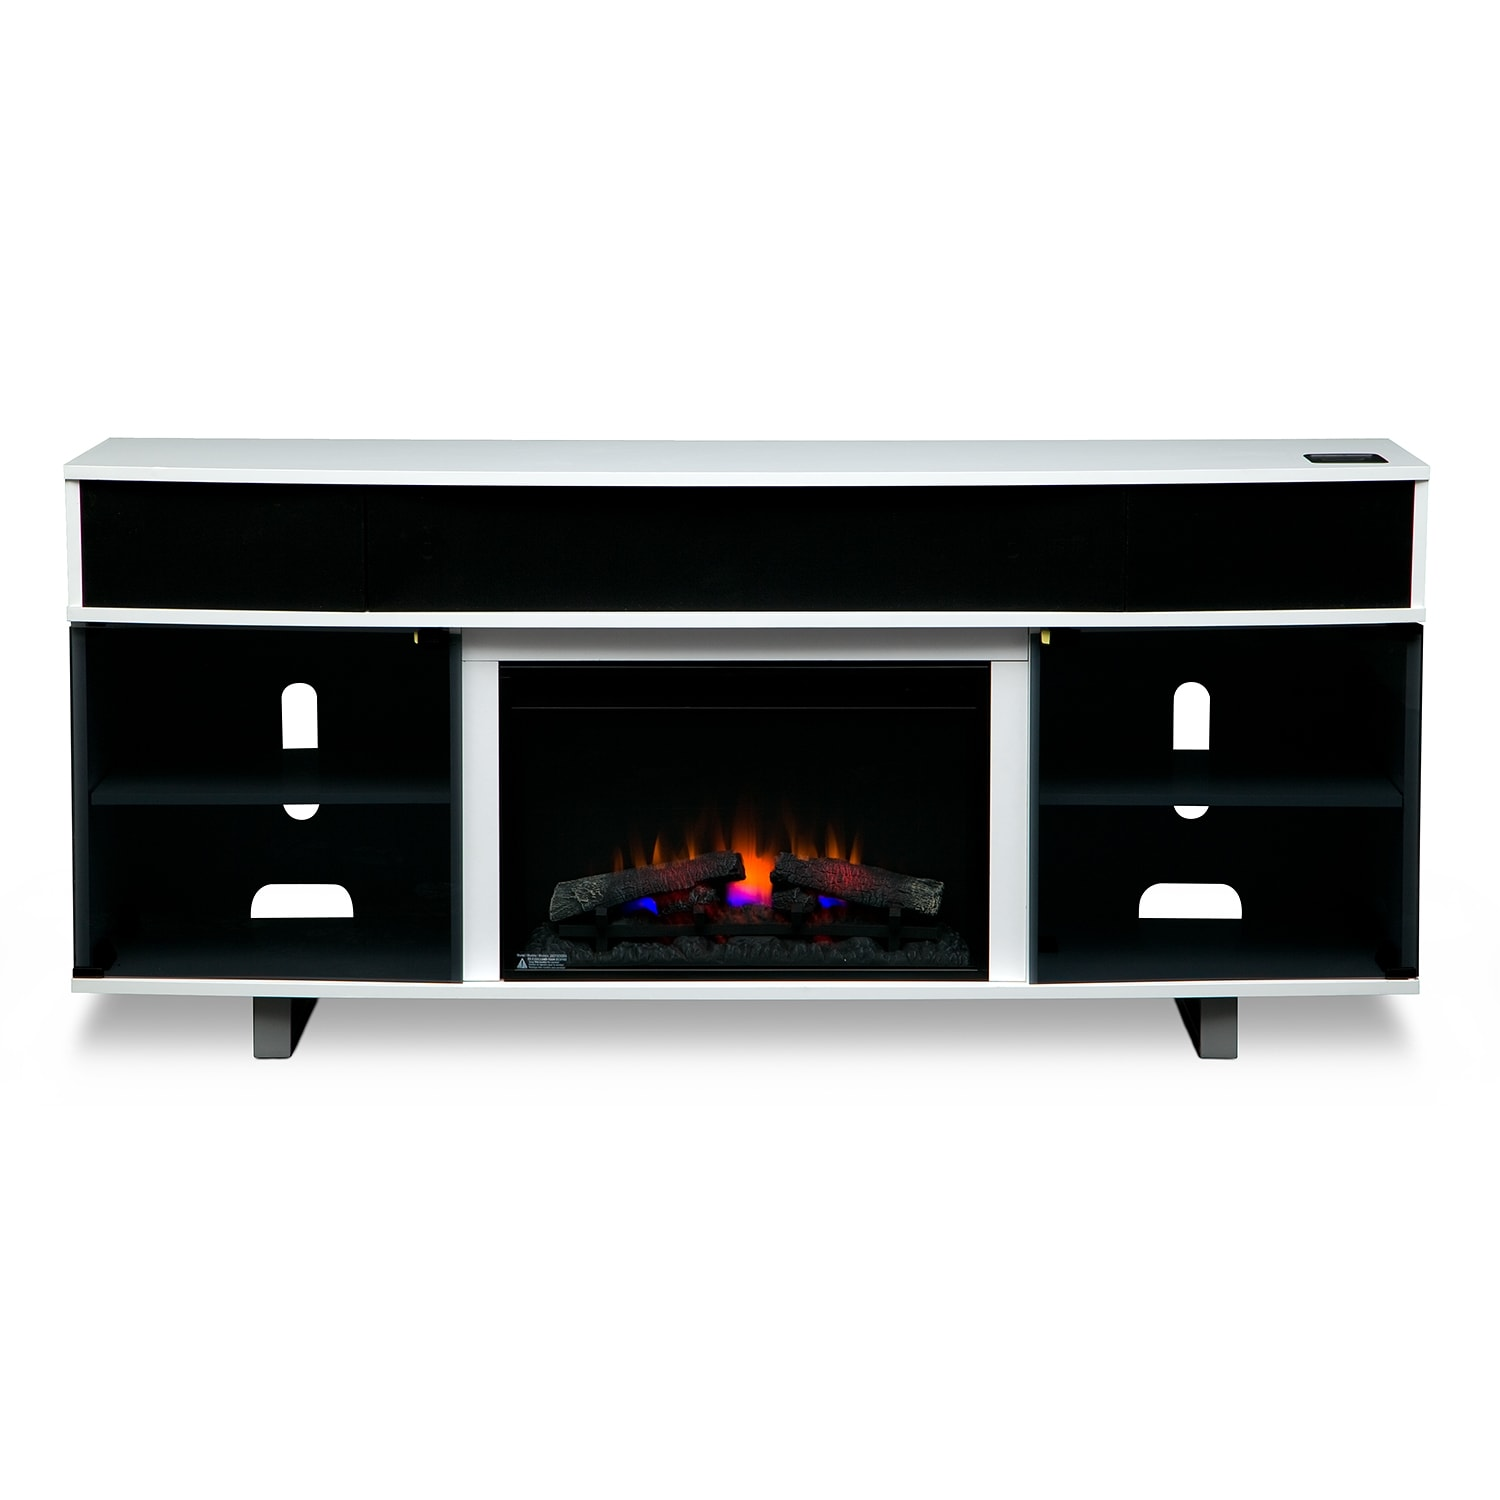 Art of tv designer tv mirrors and tv frames to match any for Stand pub